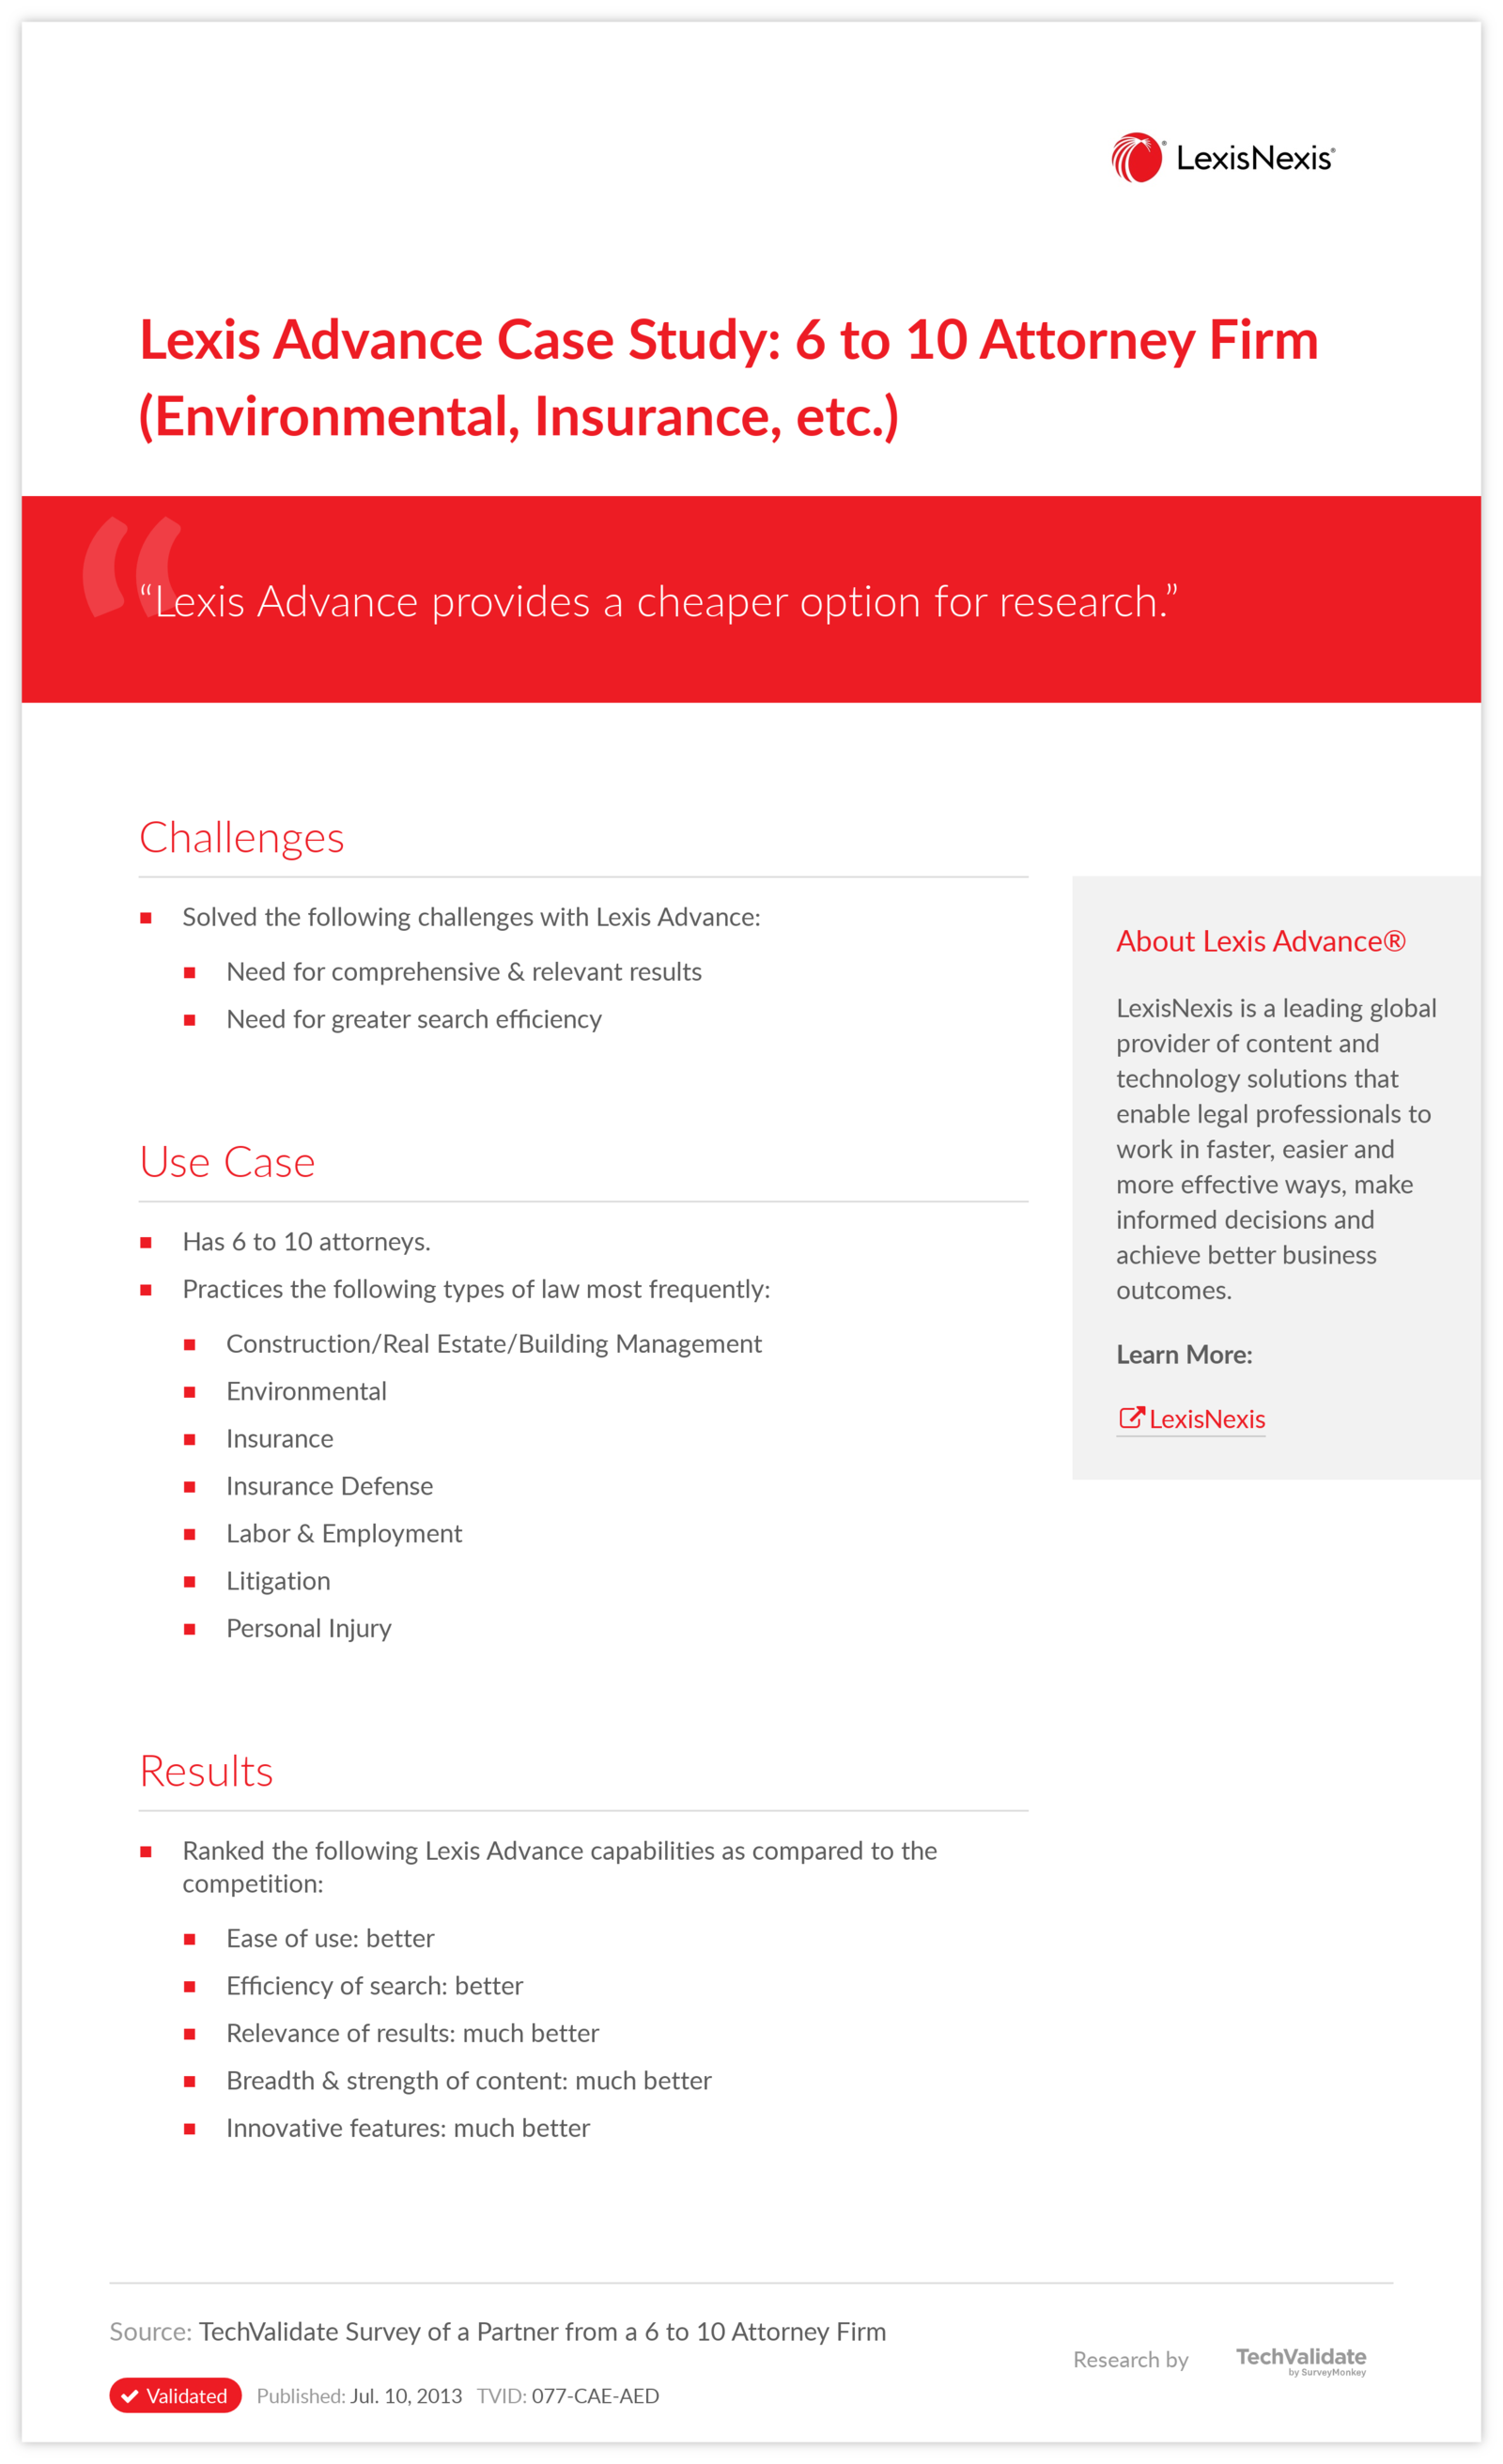 Lexis Advance Case Study: 6 to 10 Attorney Firm (Environmental, Insurance, etc.)